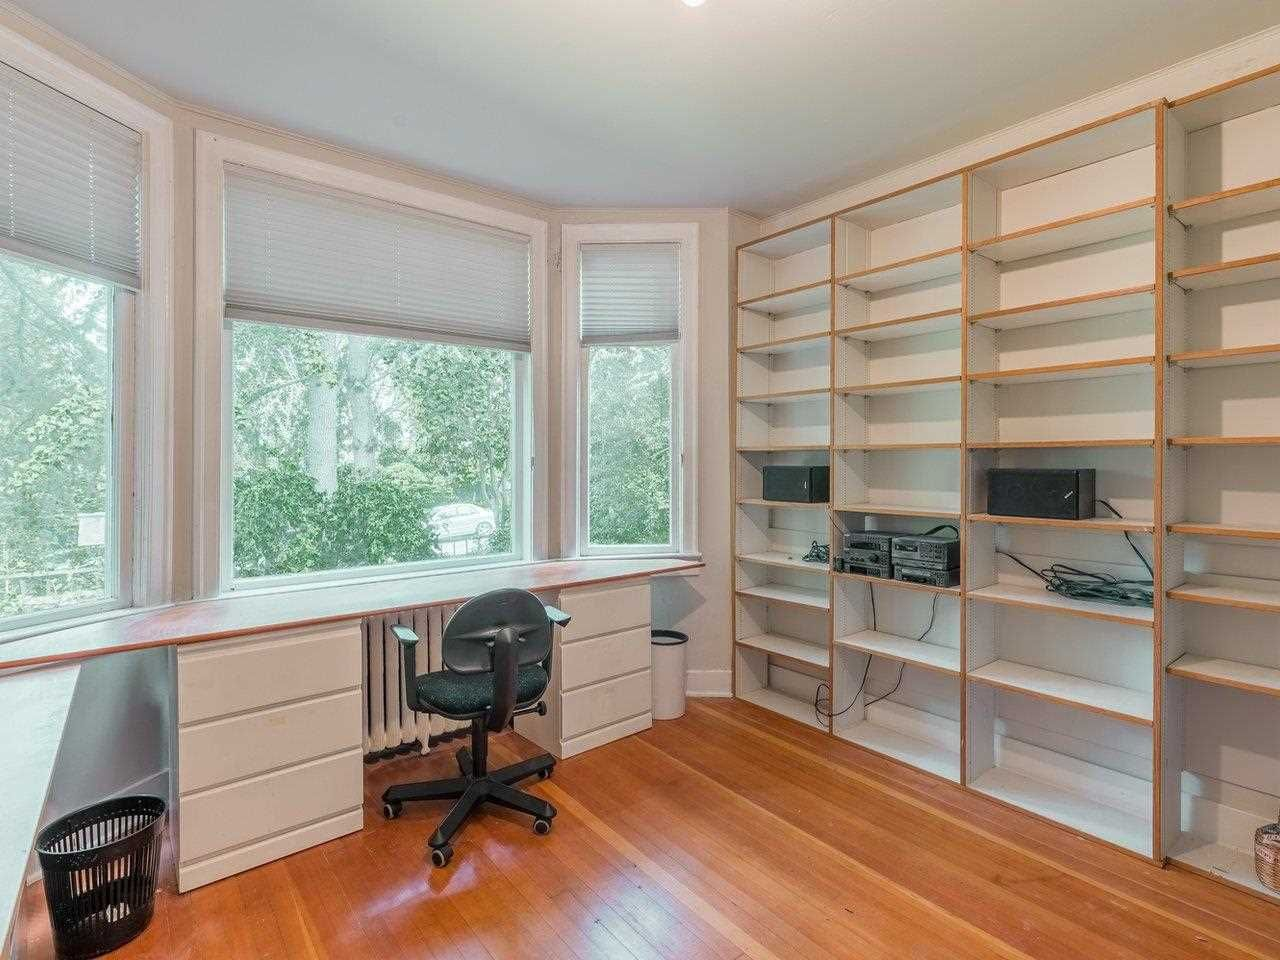 Photo 23: Photos: 2556 W 2ND Avenue in Vancouver: Kitsilano House for sale (Vancouver West)  : MLS®# R2593228